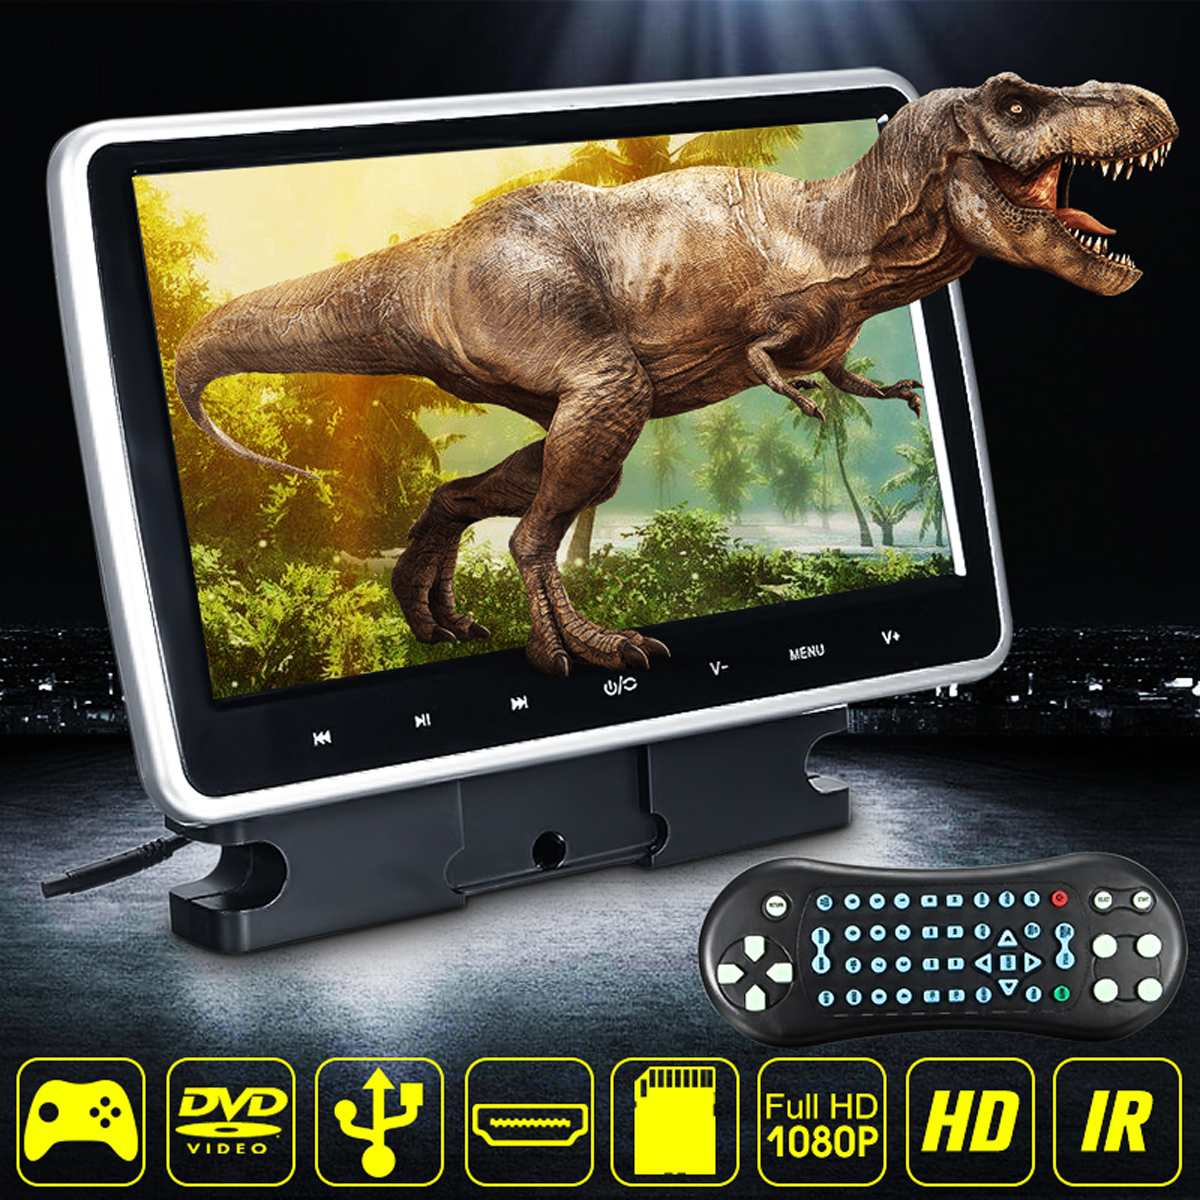 Autoleader 10 inch Car DVD Player Active HD Touch Headrest Monitor Game Handle LCD 1024X600 Portable Car DVD Player 9 8 inch lcd screen digital multimedia portable evd dvd with tv avi cd r rw peg 4 game function 270 degree rotation hd player